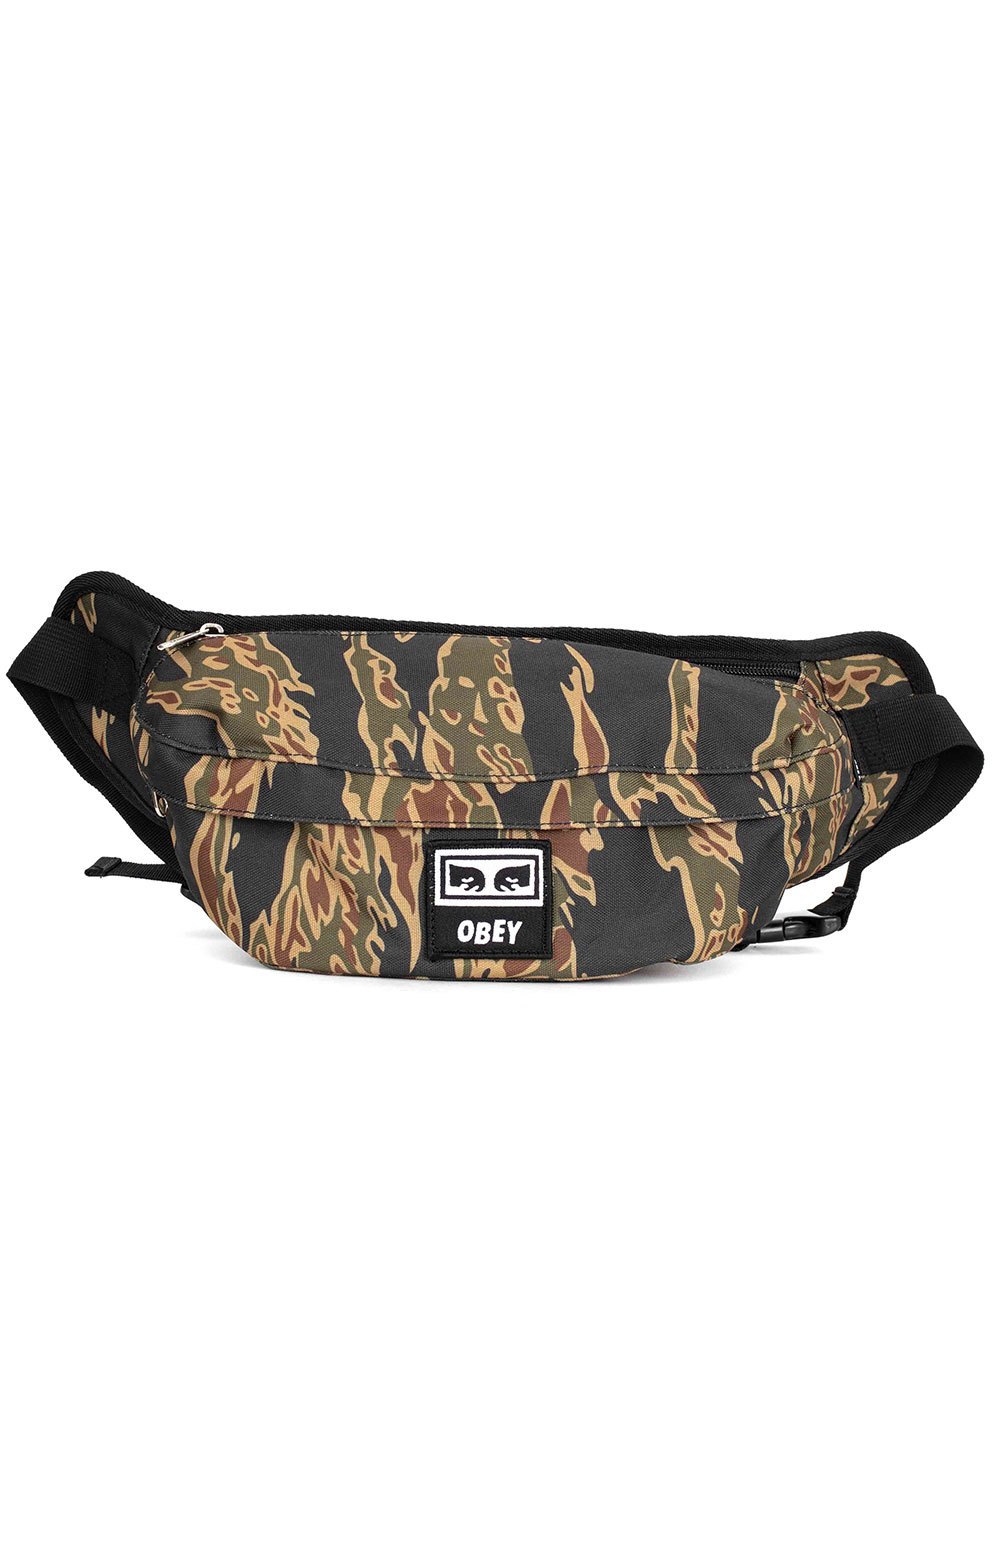 Drop Out Sling Pack - Tiger Camo